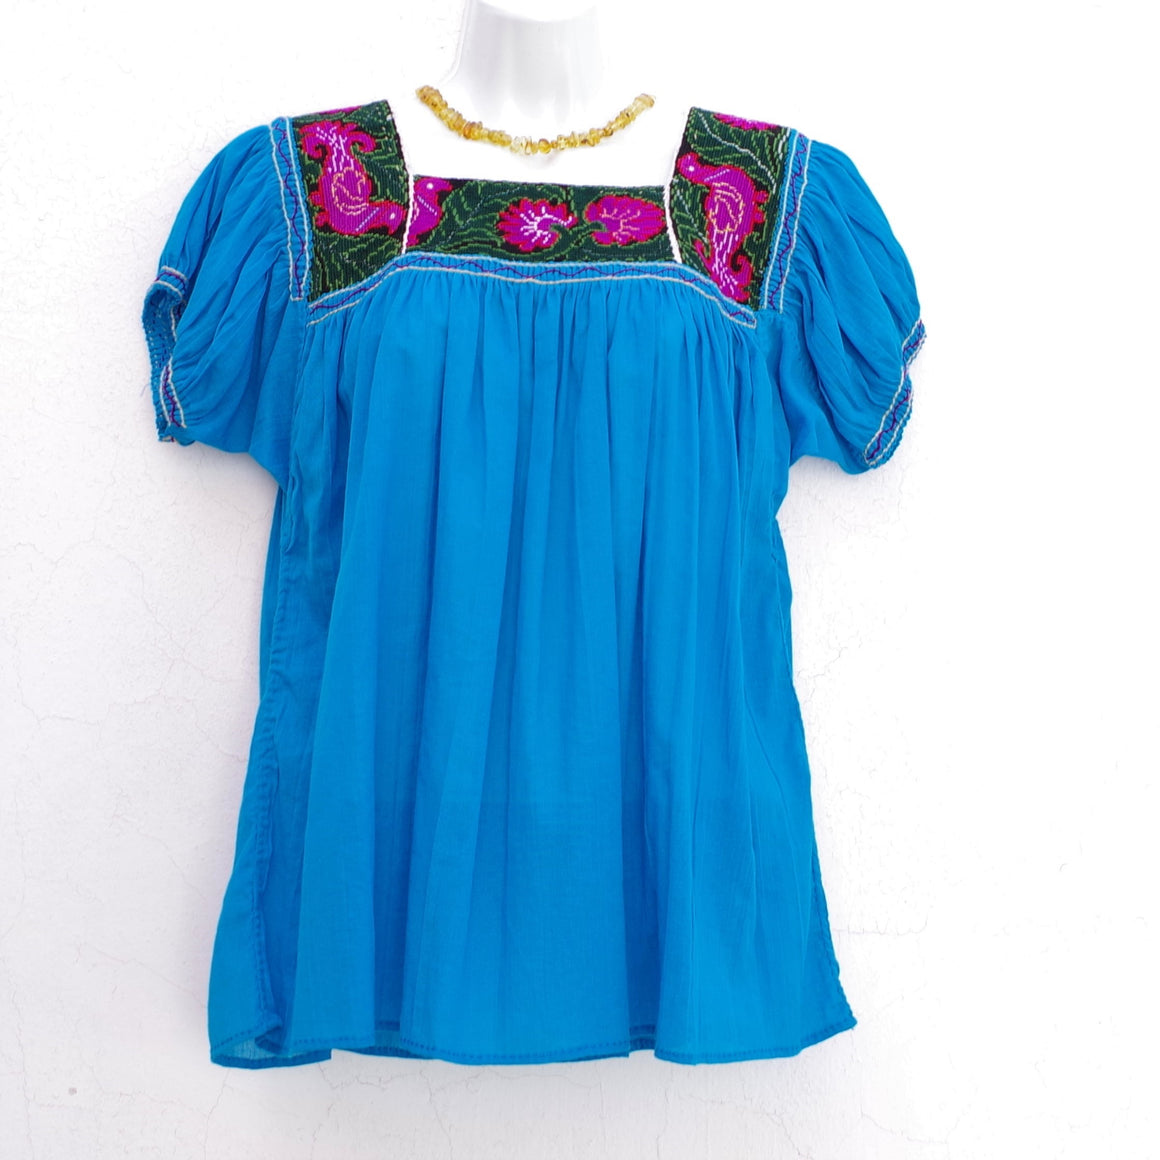 Blue Mexican Huipil Vintage Blouse with Dark Green and Purple Hand Embroidery from Chiapas M Size